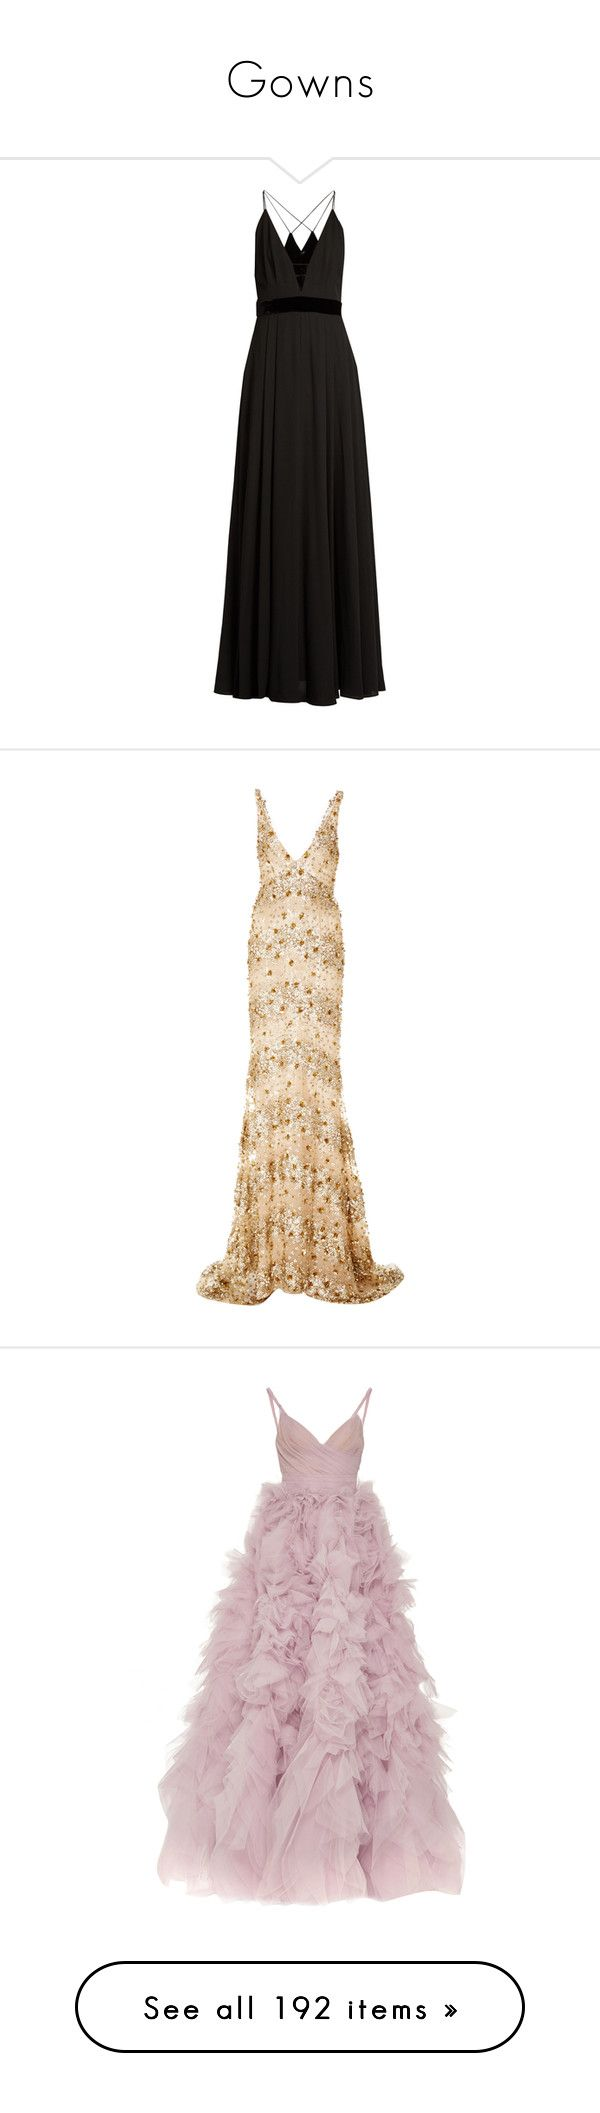 """""""Gowns"""" by isthelastofus ❤ liked on Polyvore featuring dresses, gowns, black, evening dresses, v neck dress, v neck evening gown, metallic evening gowns, special occasion dresses, long dresses and gold"""